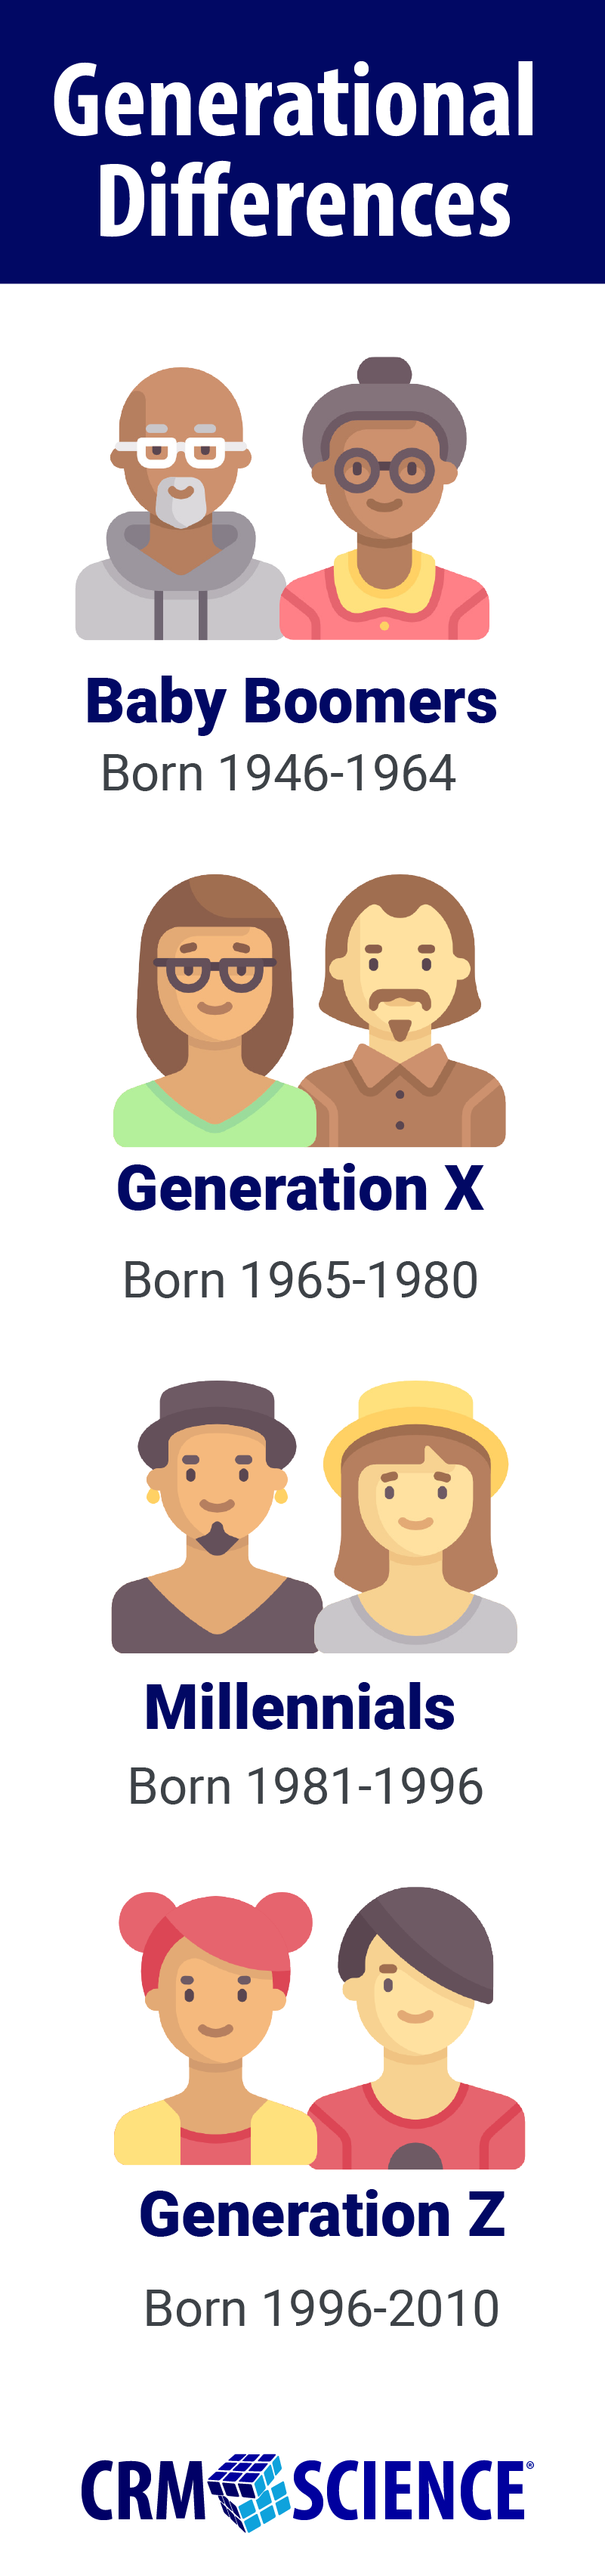 Generational Differences Infographic